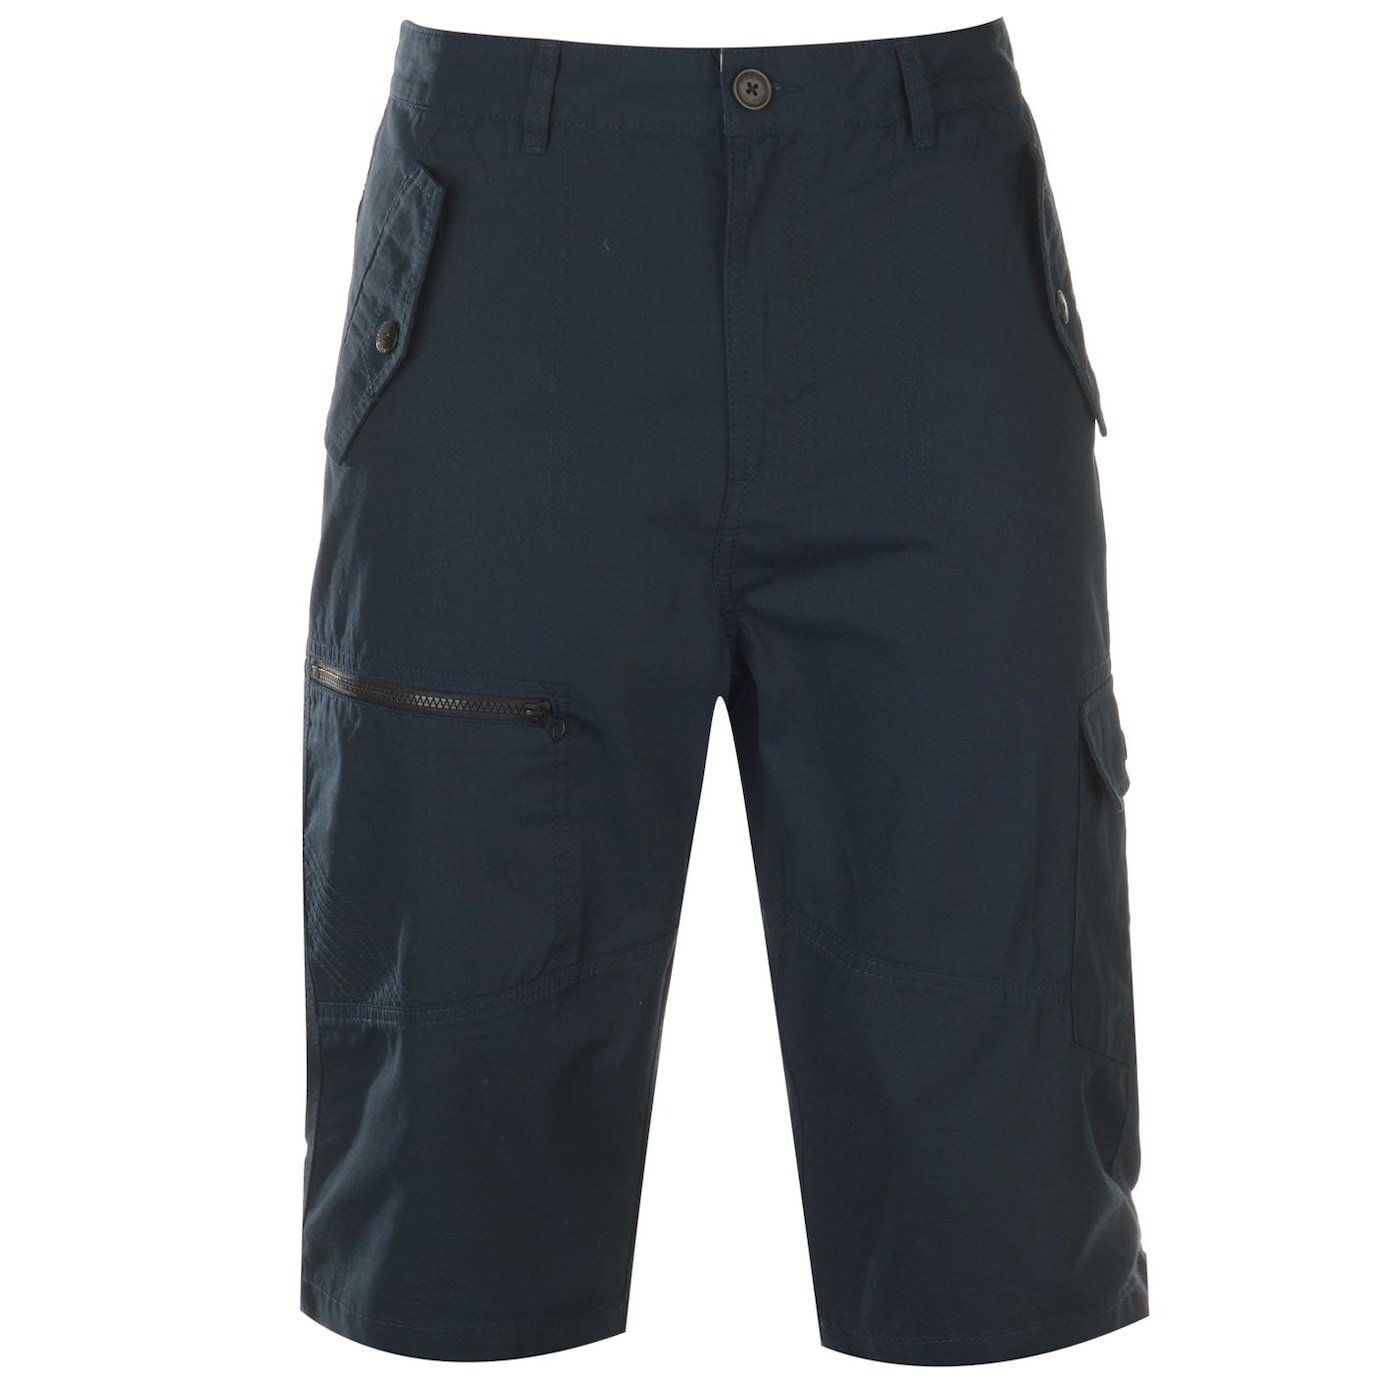 Pierre Cardin Three Quarter Woven Shorts Mens